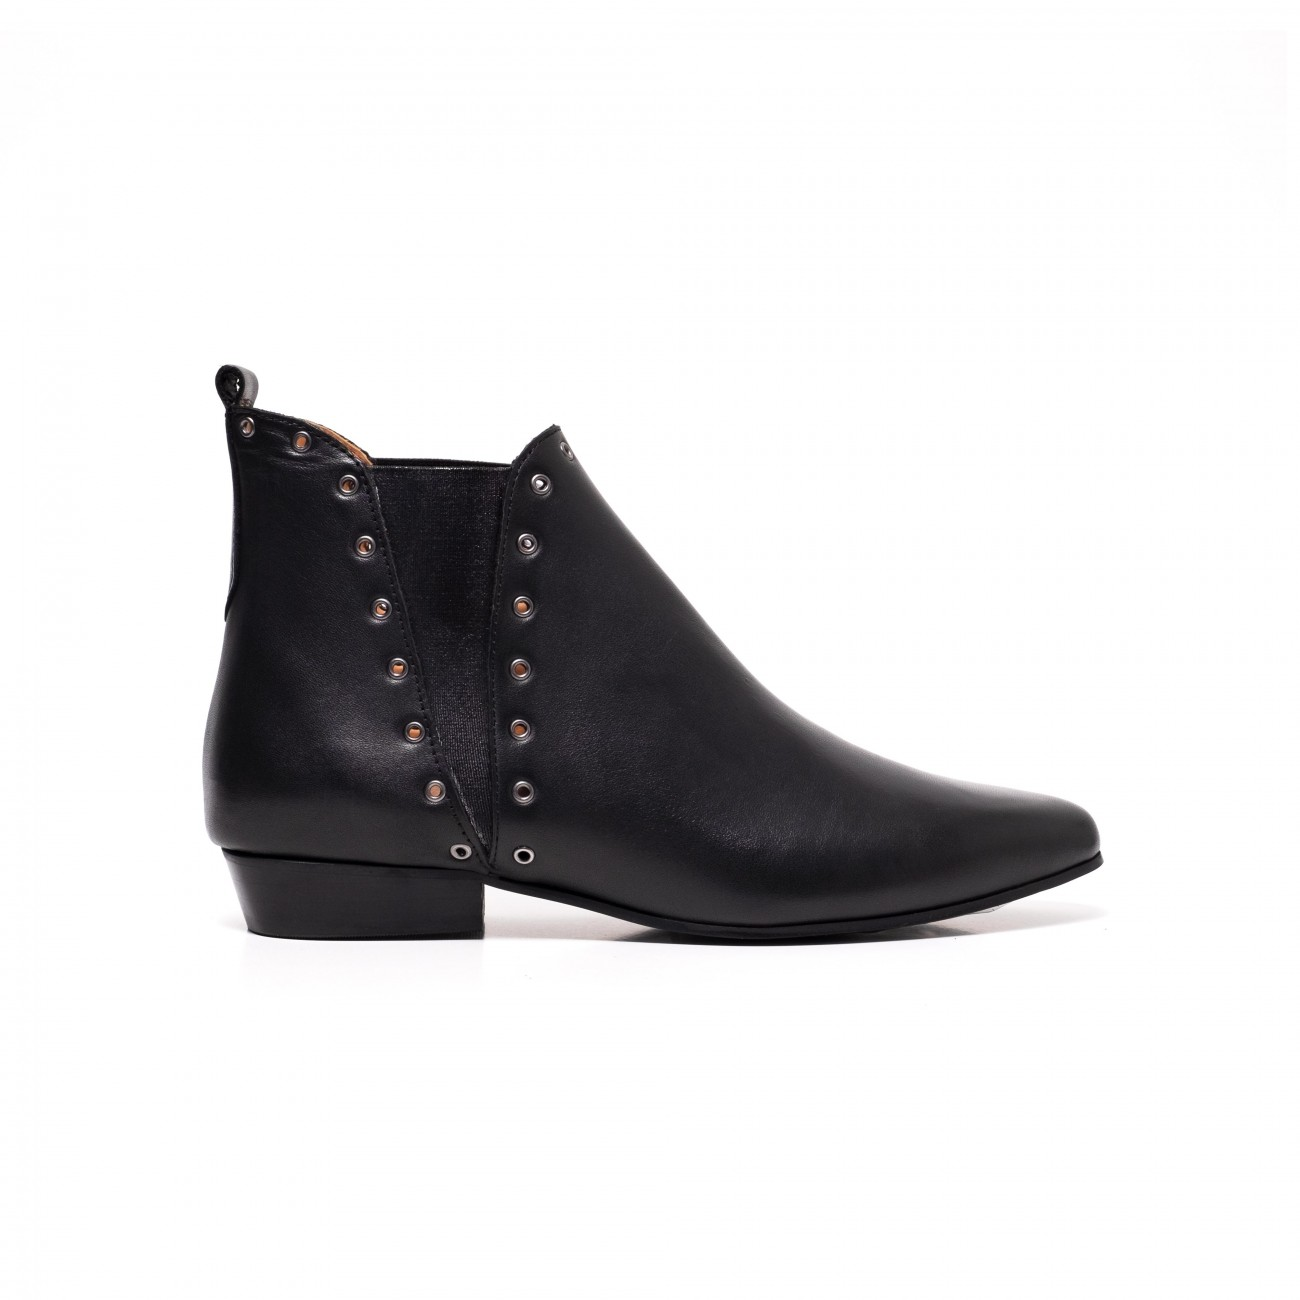 Rita eyelets black calf leather